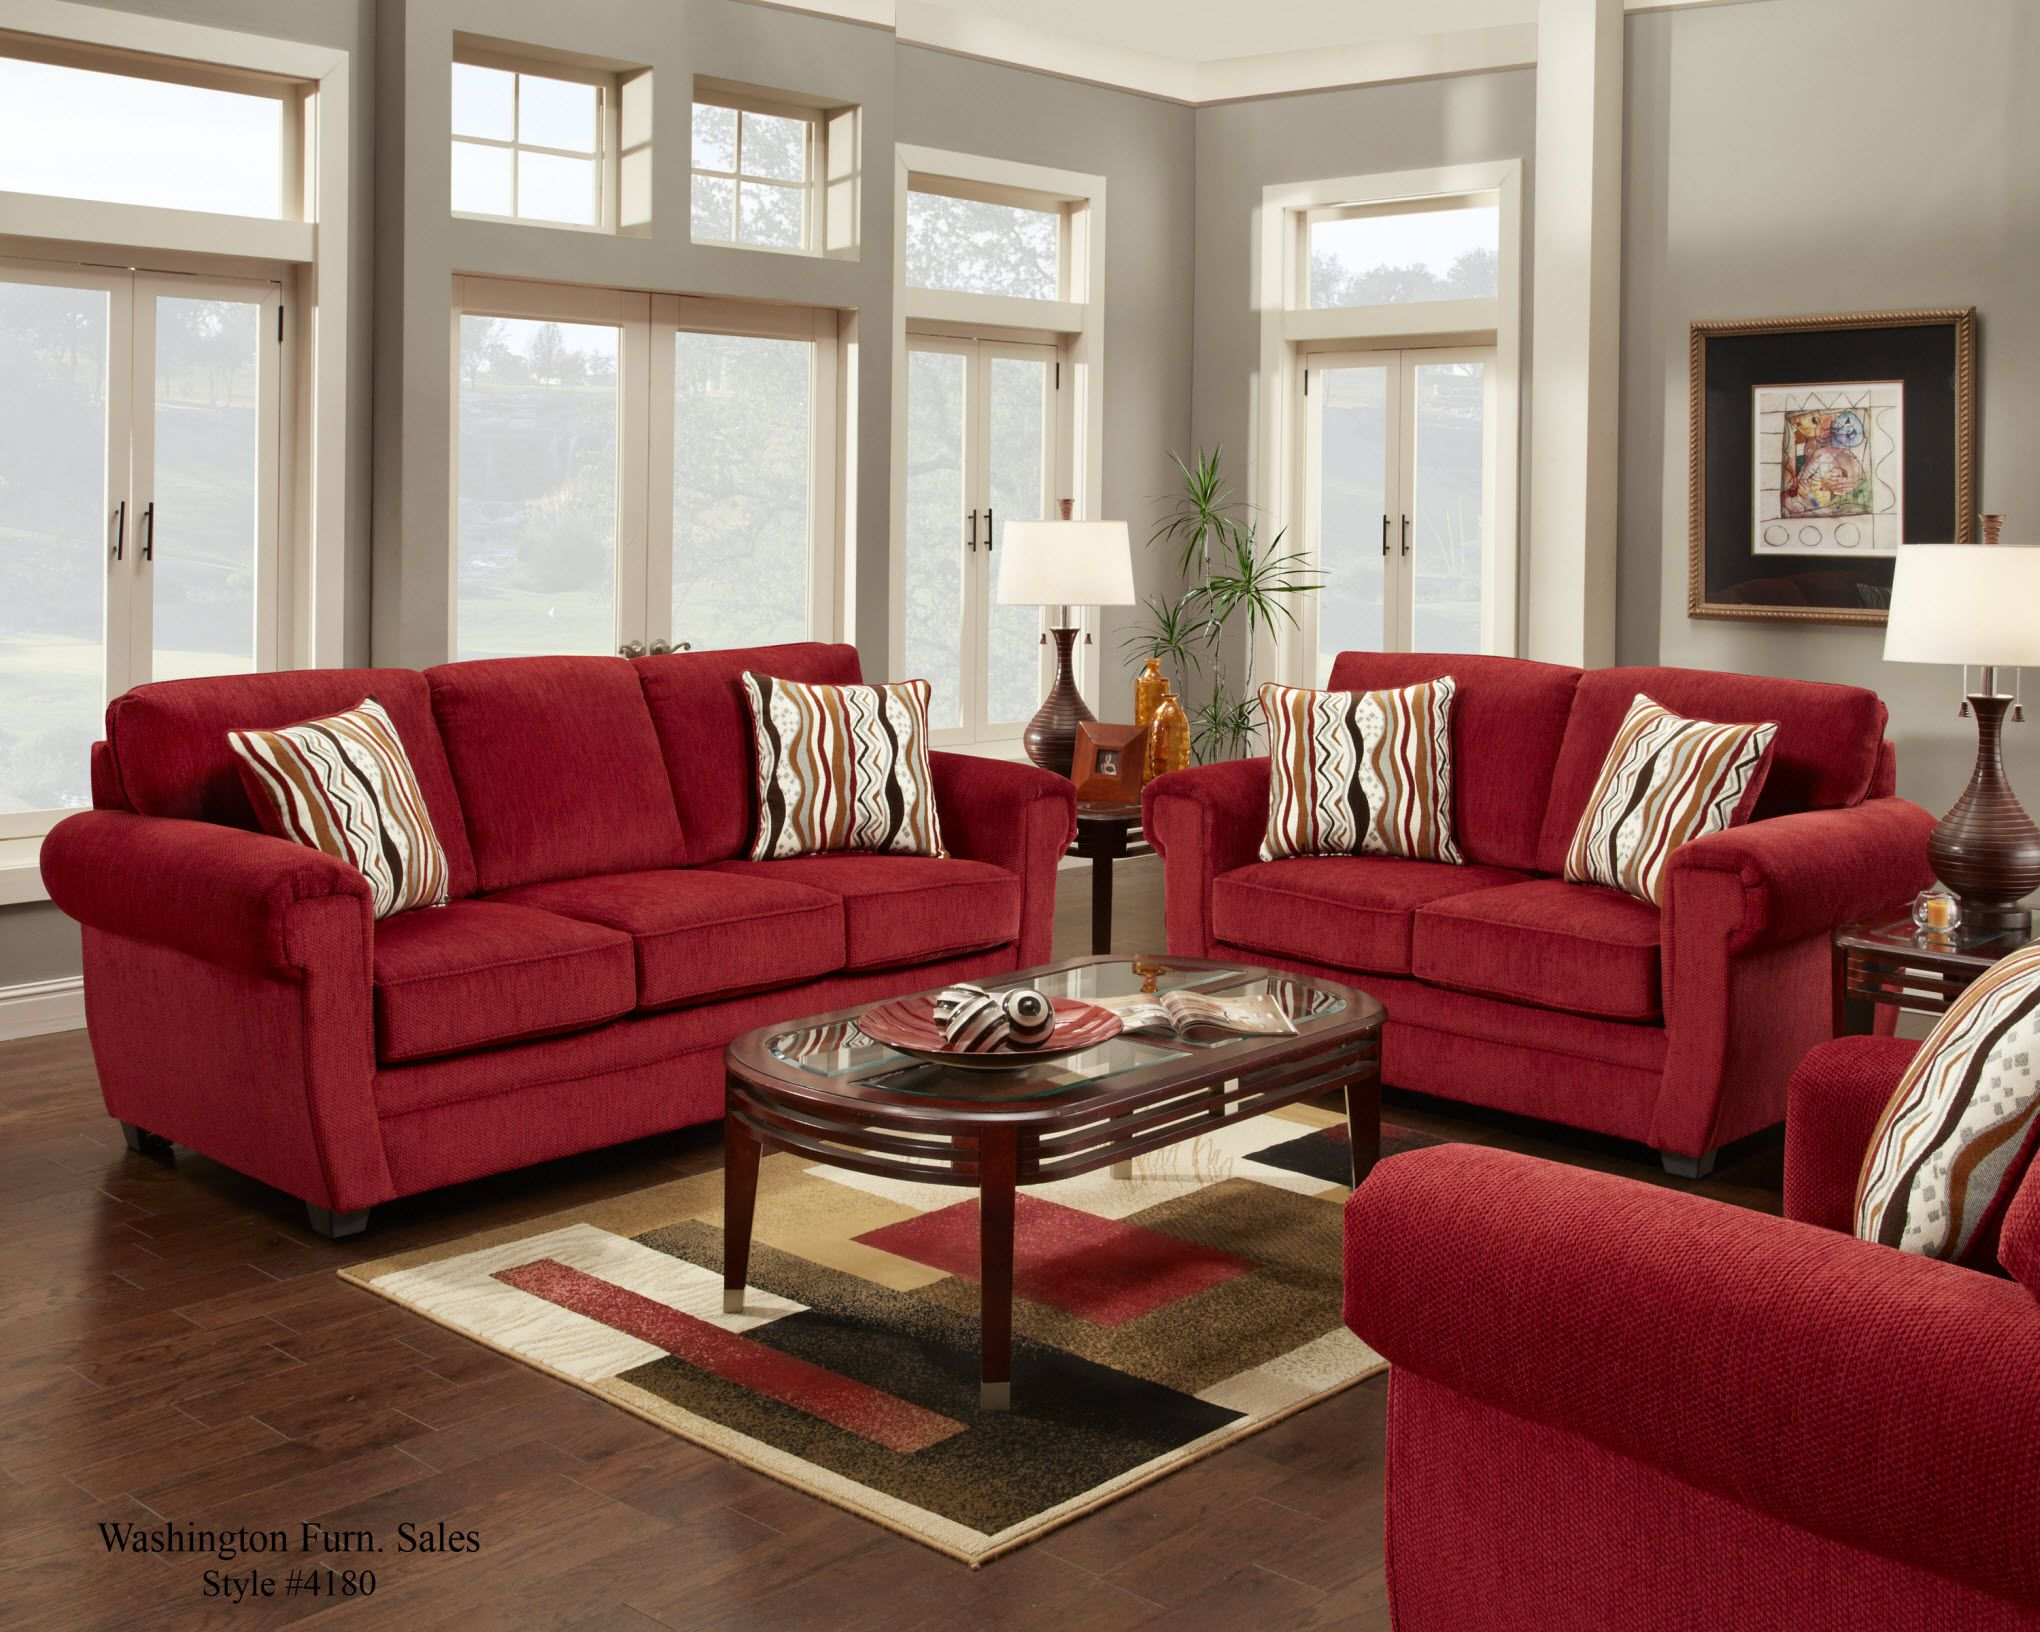 red furniture living room 4180 washington samson sofa and loveseat www 15619